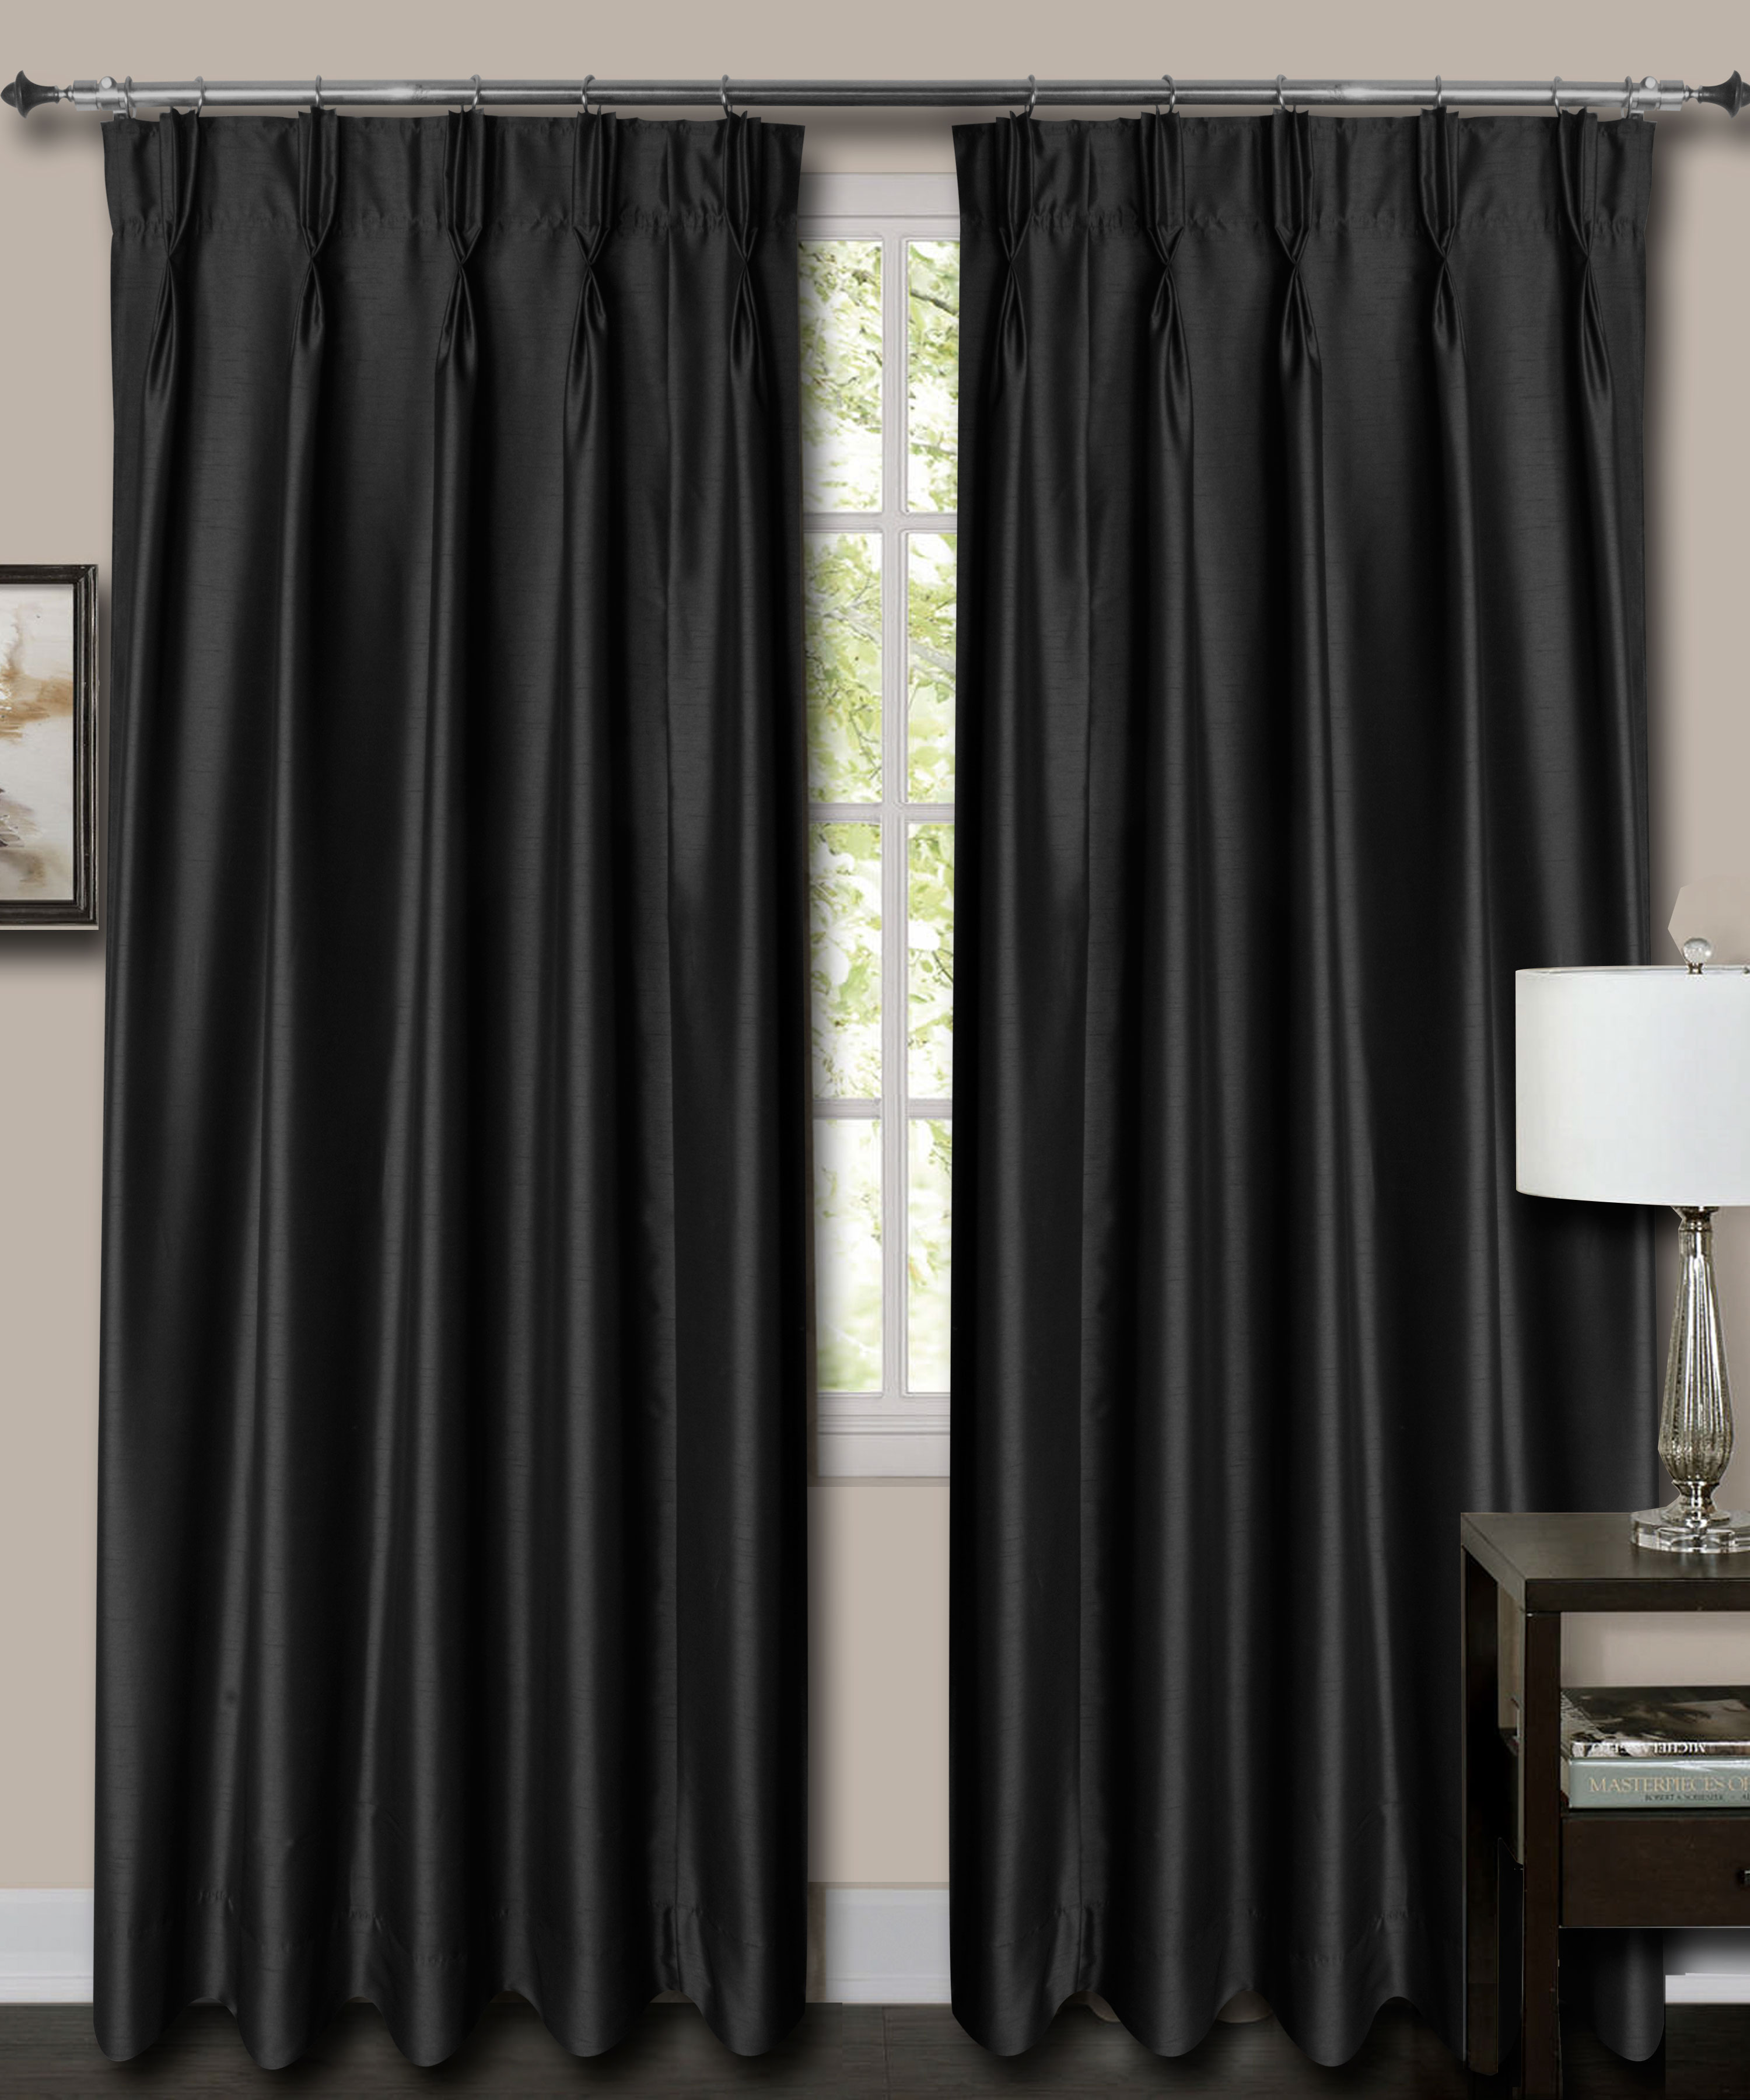 "French Pleat Top Black Faux Silk Dupioni Curtains. (52"" Wide, 14 Feet Long, Blackout Lining)"